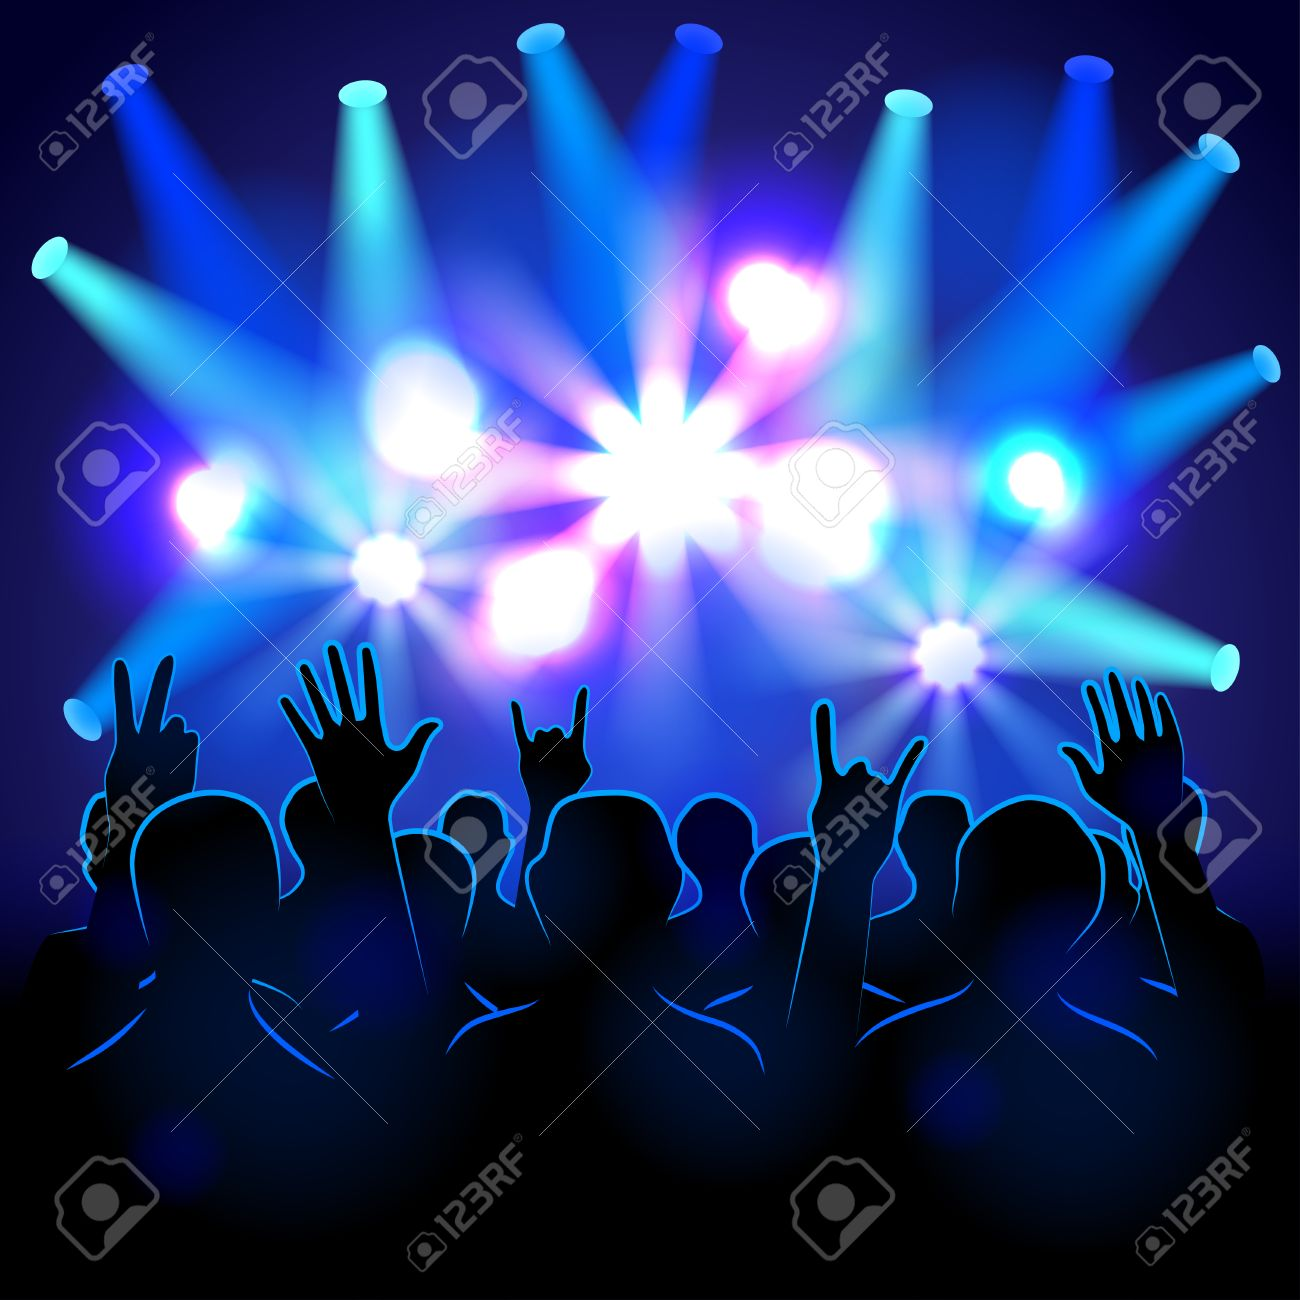 Pics photos rock concert background - Silhouettes And Lights On Musical Concert Vector Background Stock Vector 41602816